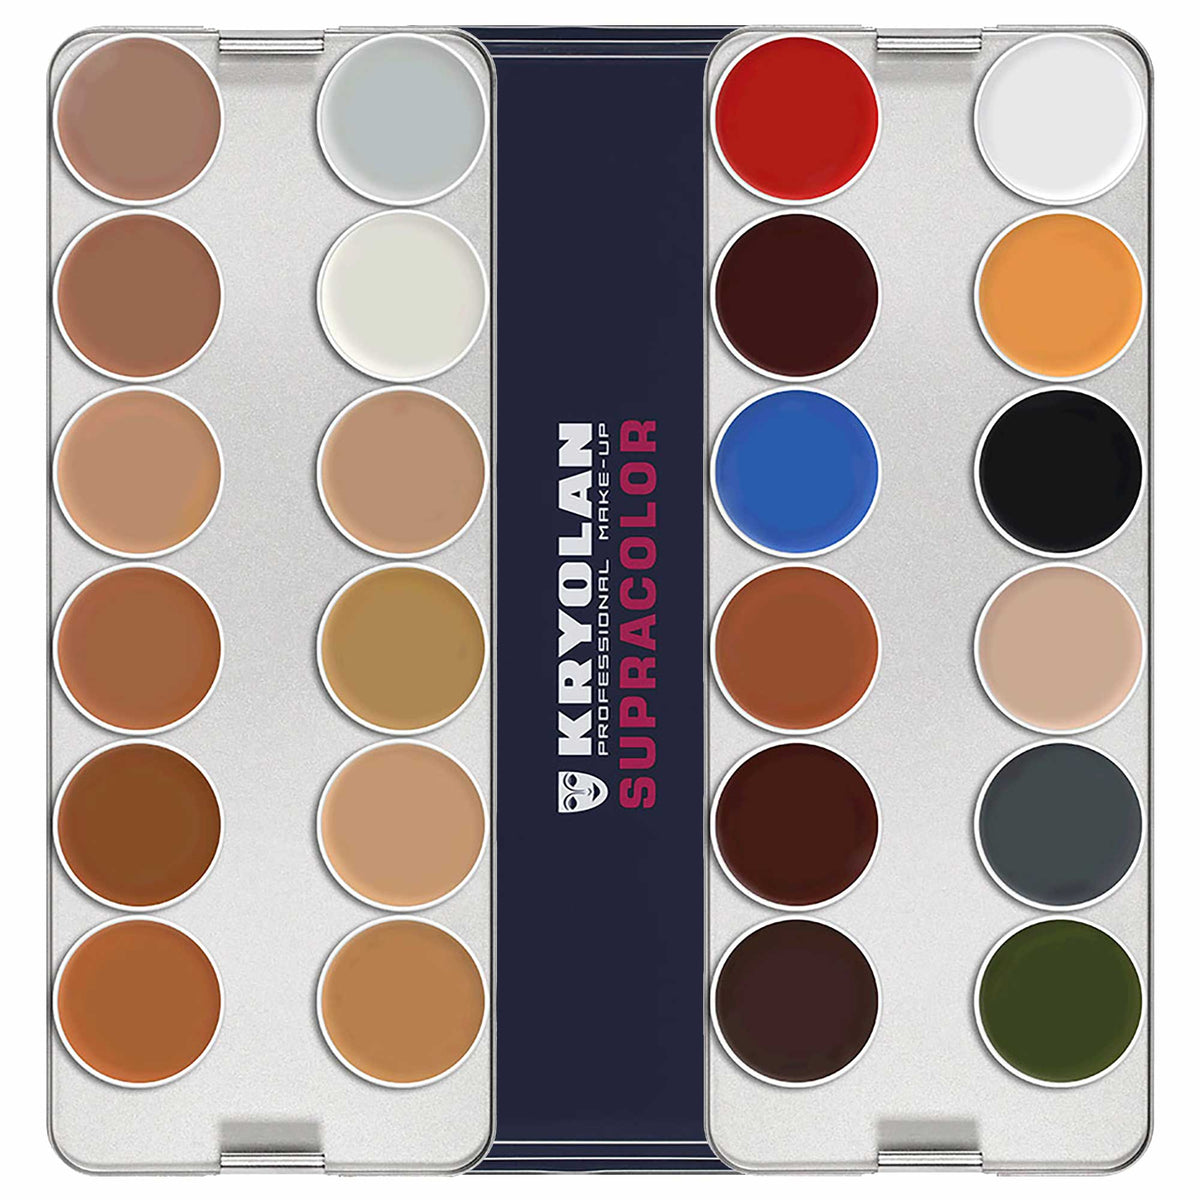 Kryolan SUPRACOLOR 24 Palette - Face & Body Paint - N